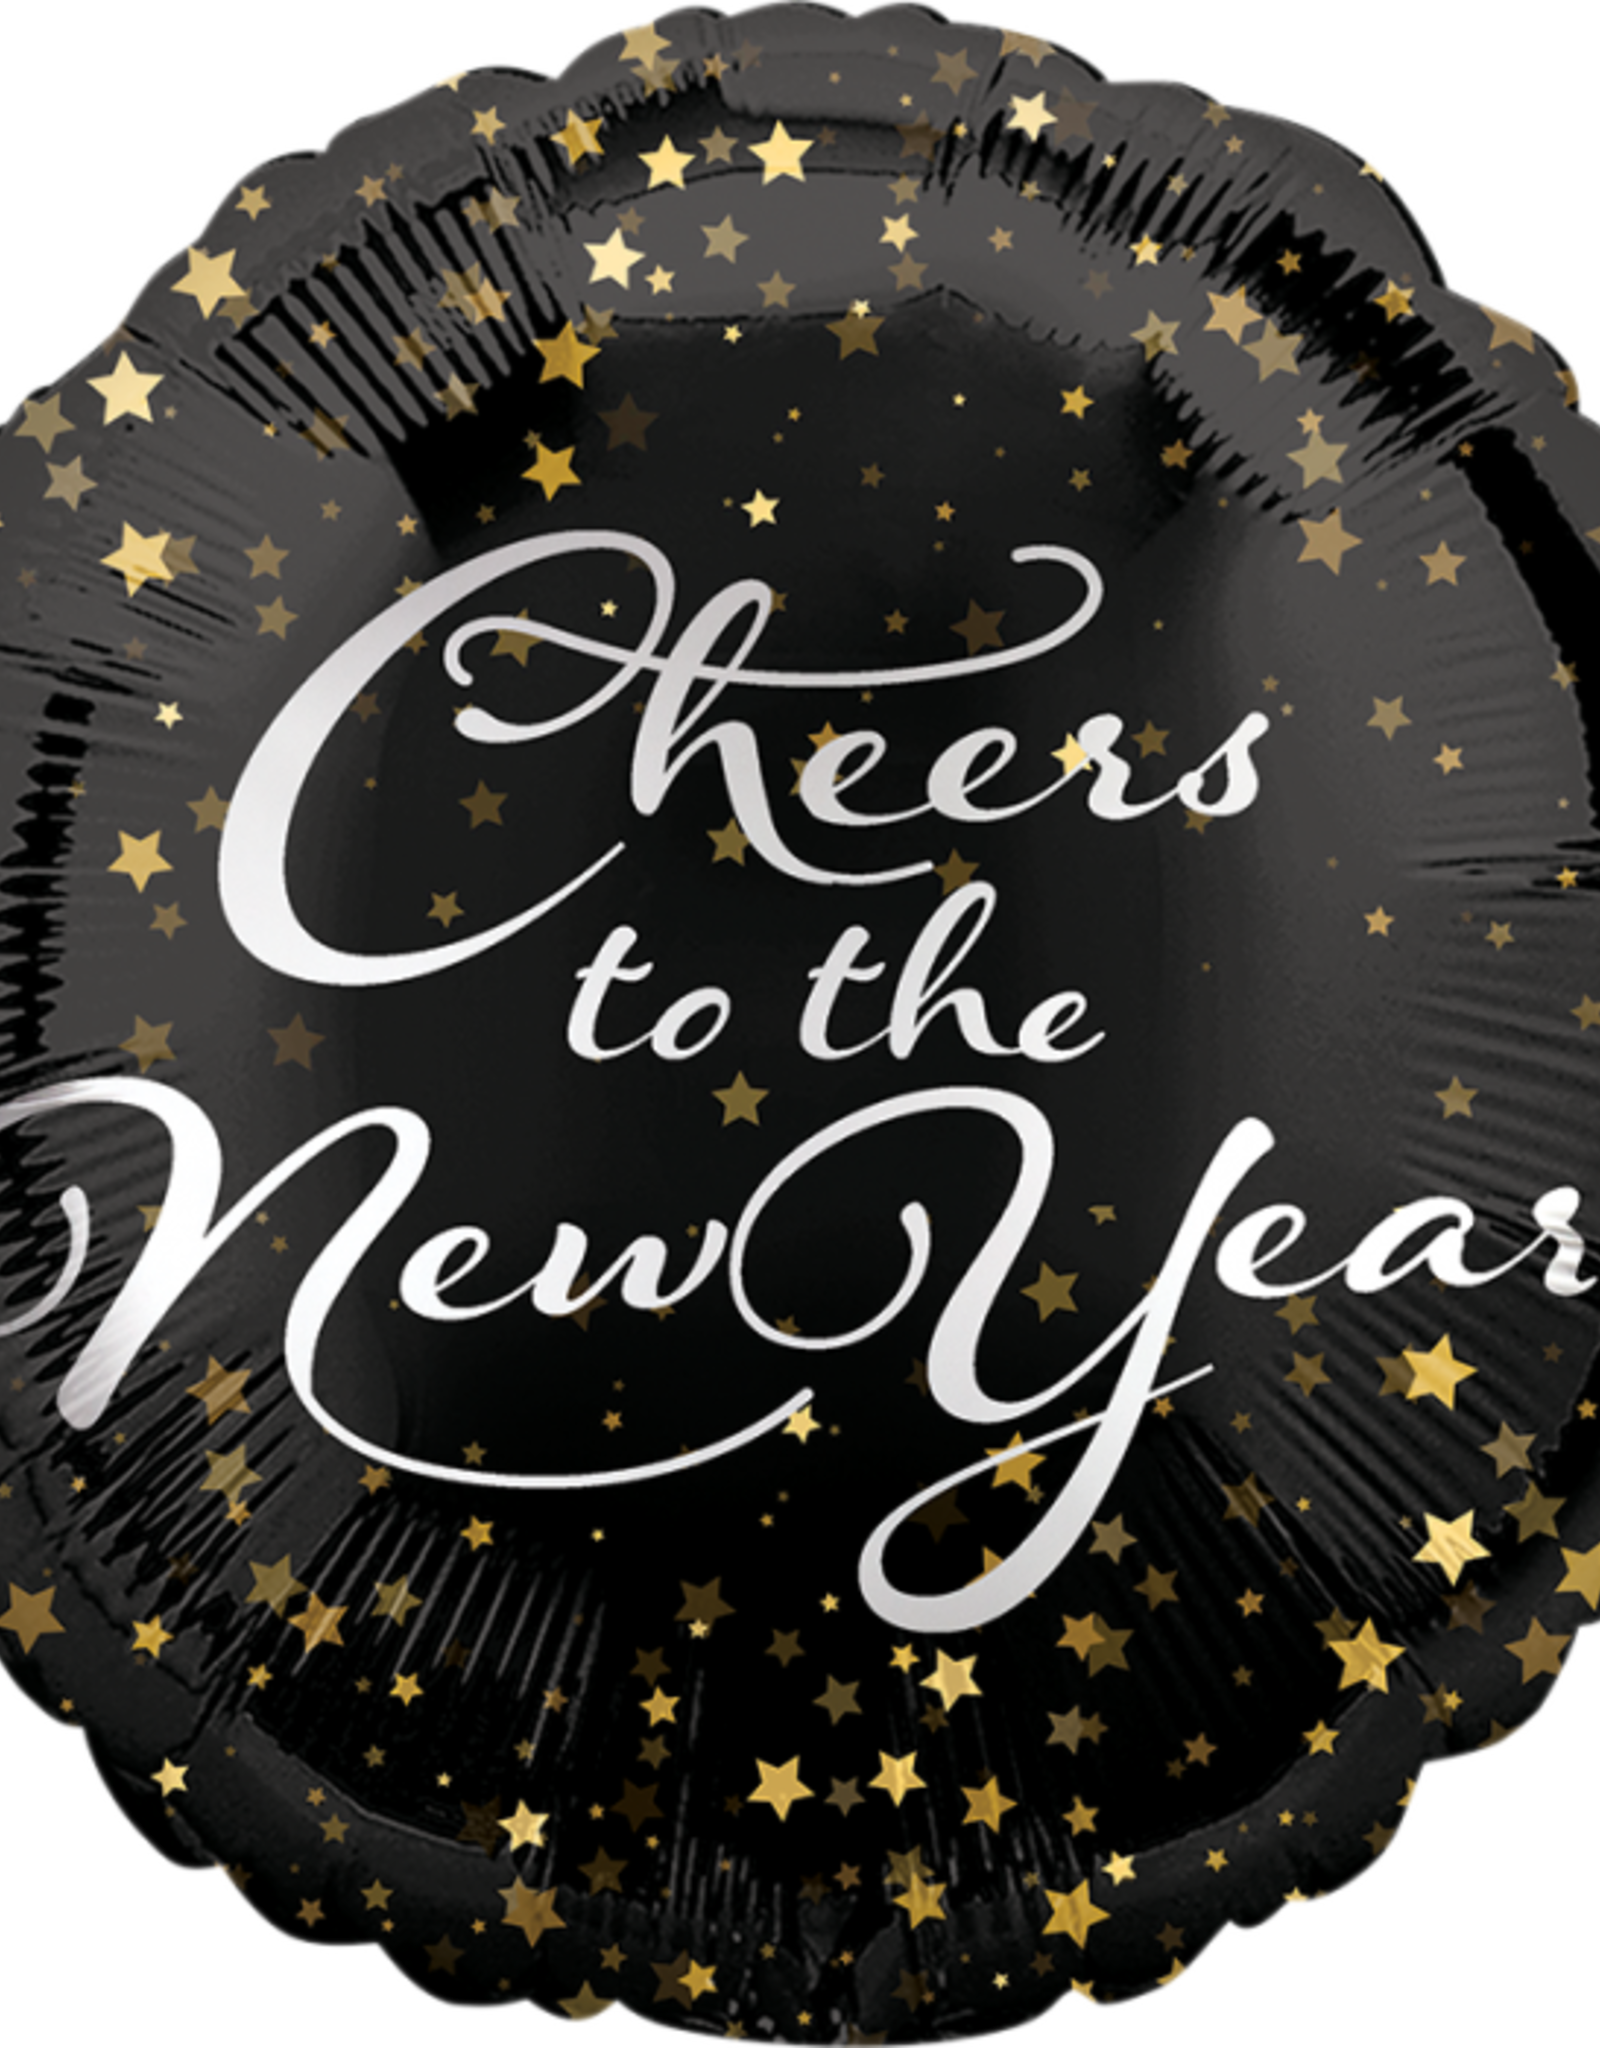 """18"""" Cheers to the new year!"""